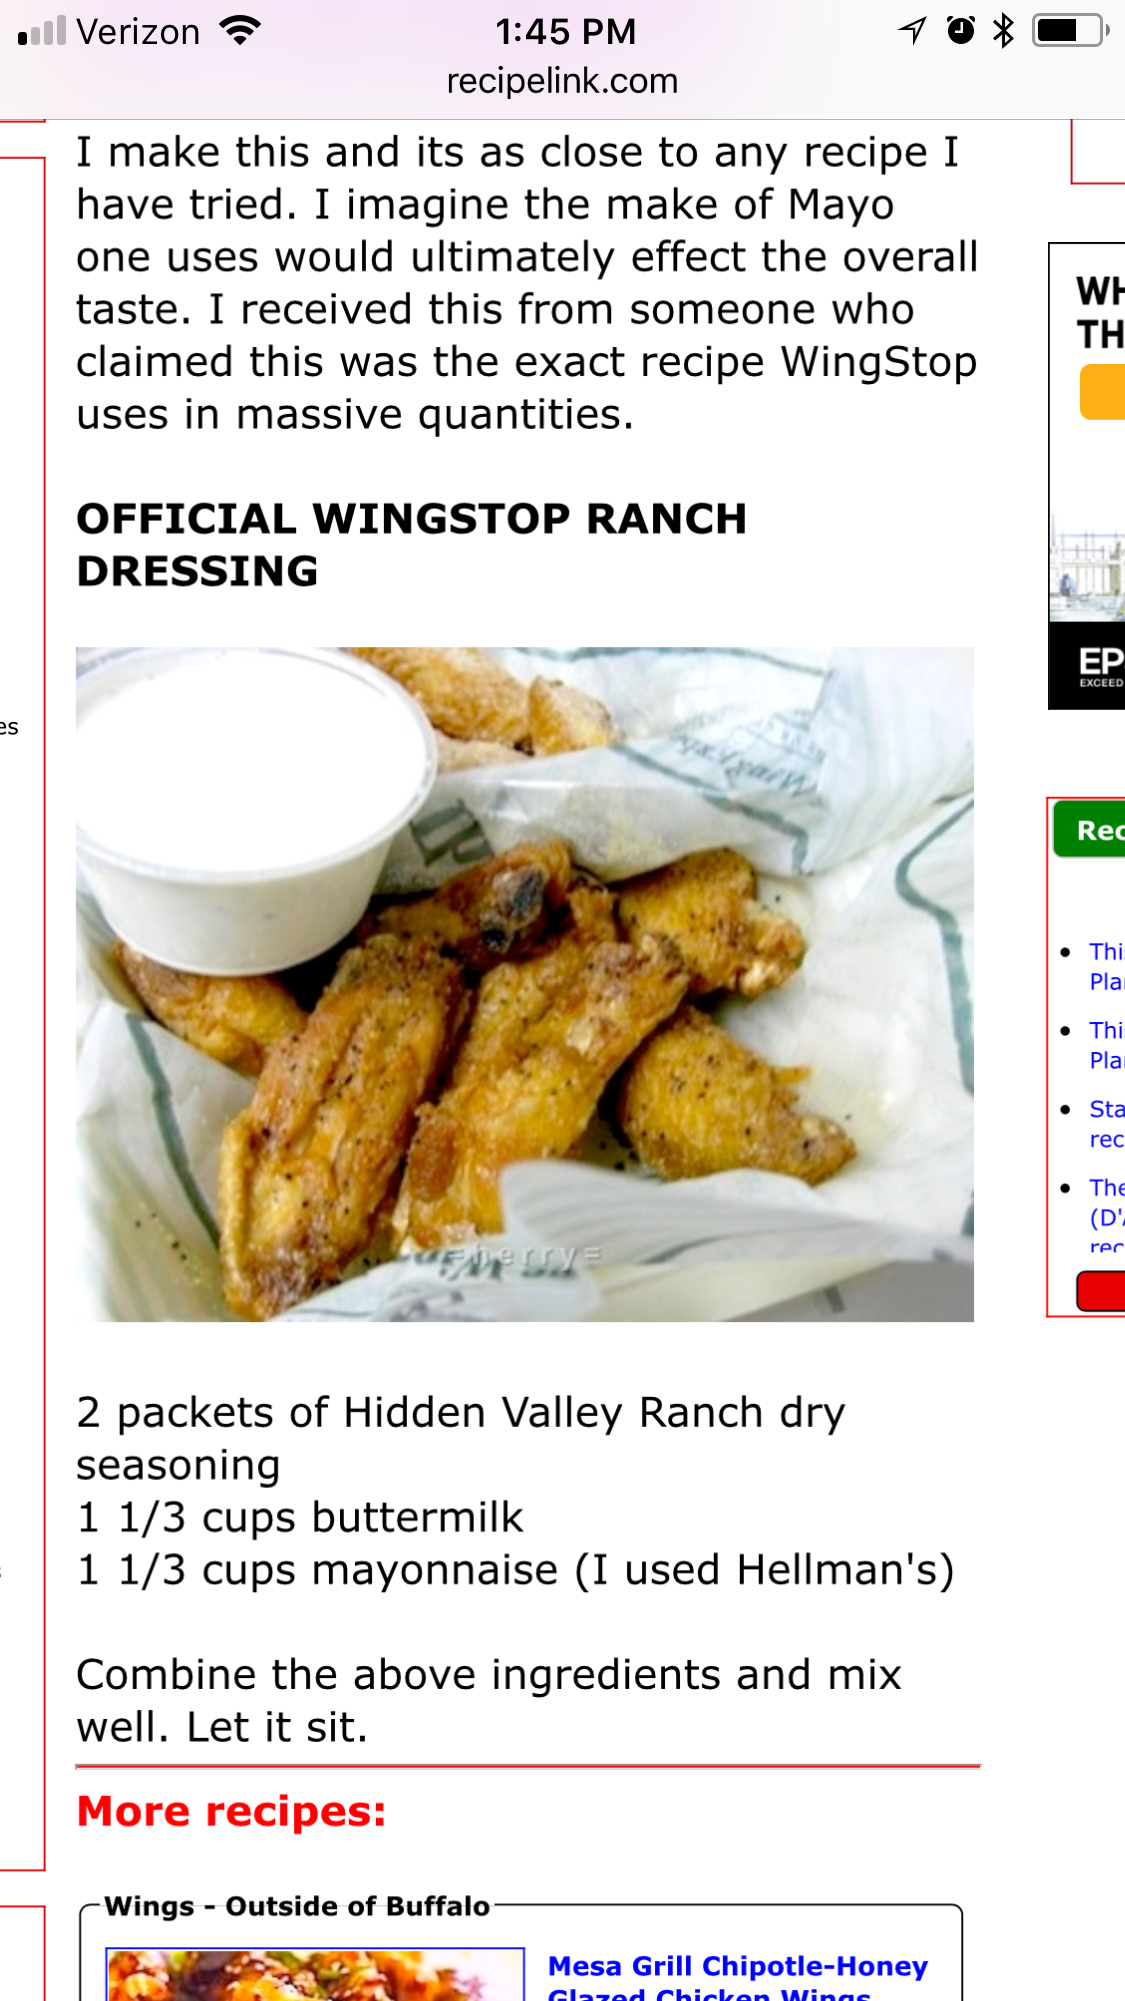 photo regarding Wingstop Printable Menu titled Wing Avoid Ranch Recipe Recipes within 2019 Wingstop ranch